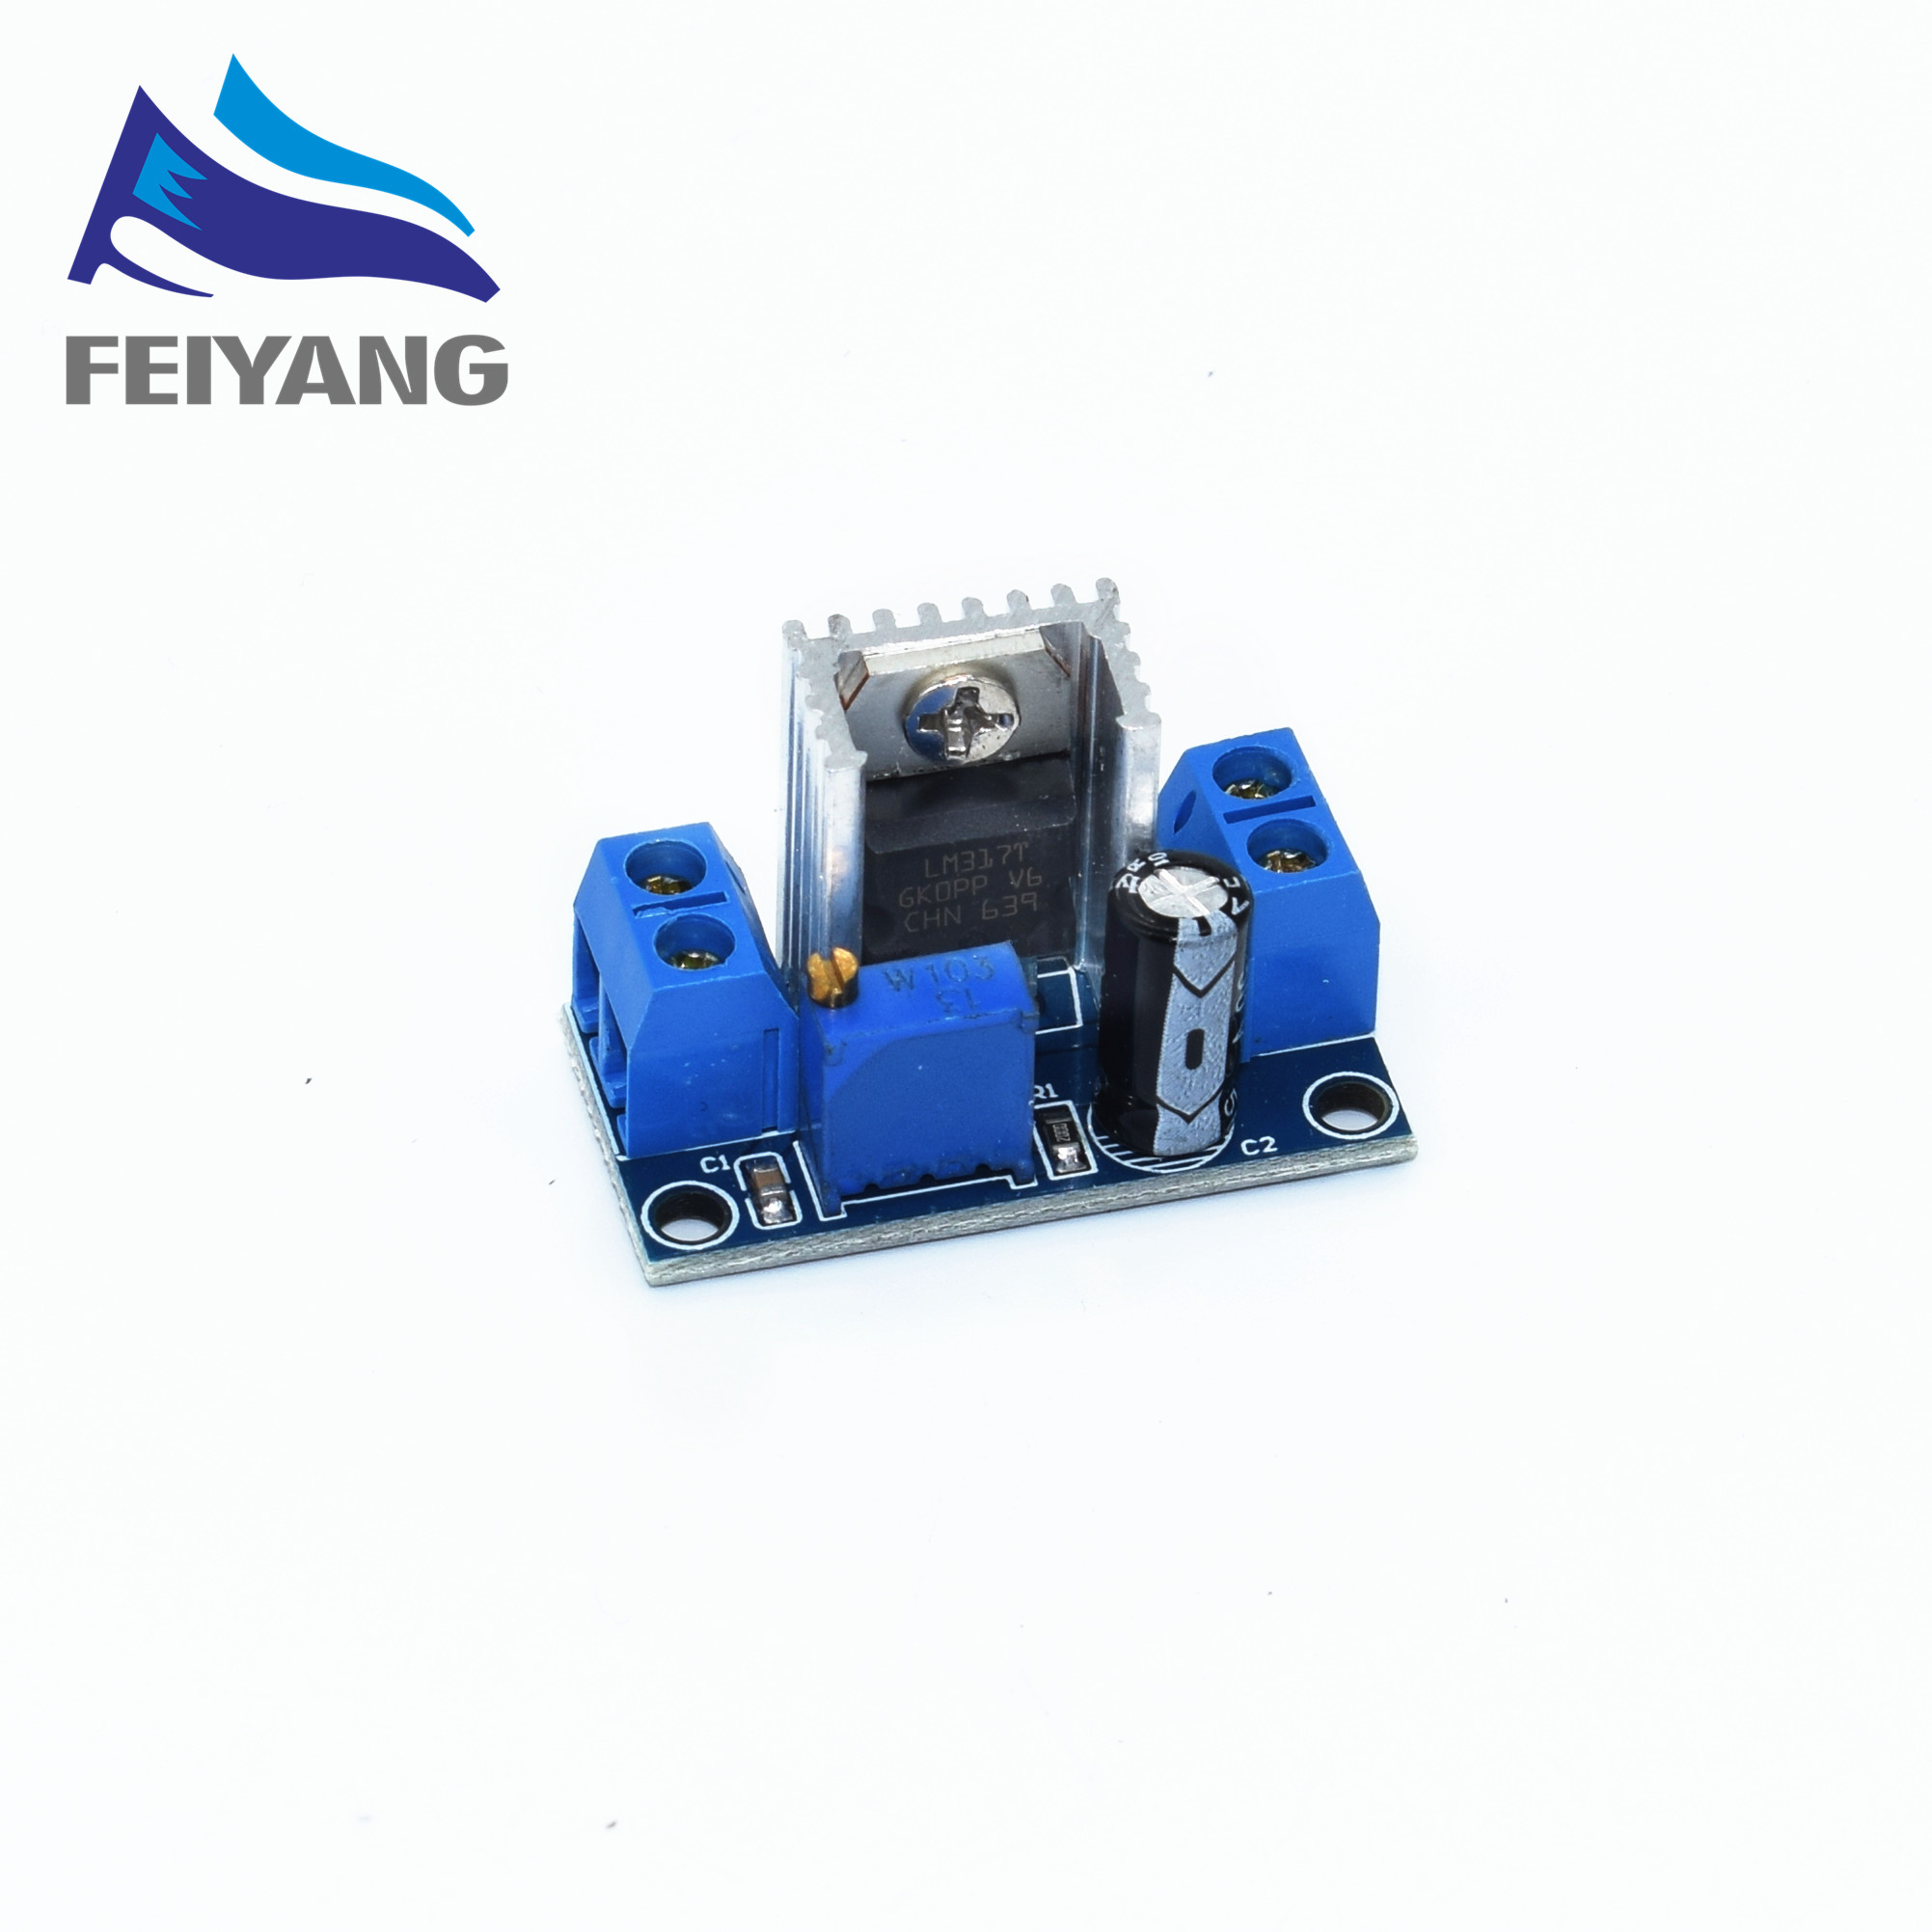 A Lm Adjustable Voltage Regulator Power Supply Lm Dc Dc Converter Buck Step Down Circuit Board Module Linear Regulator